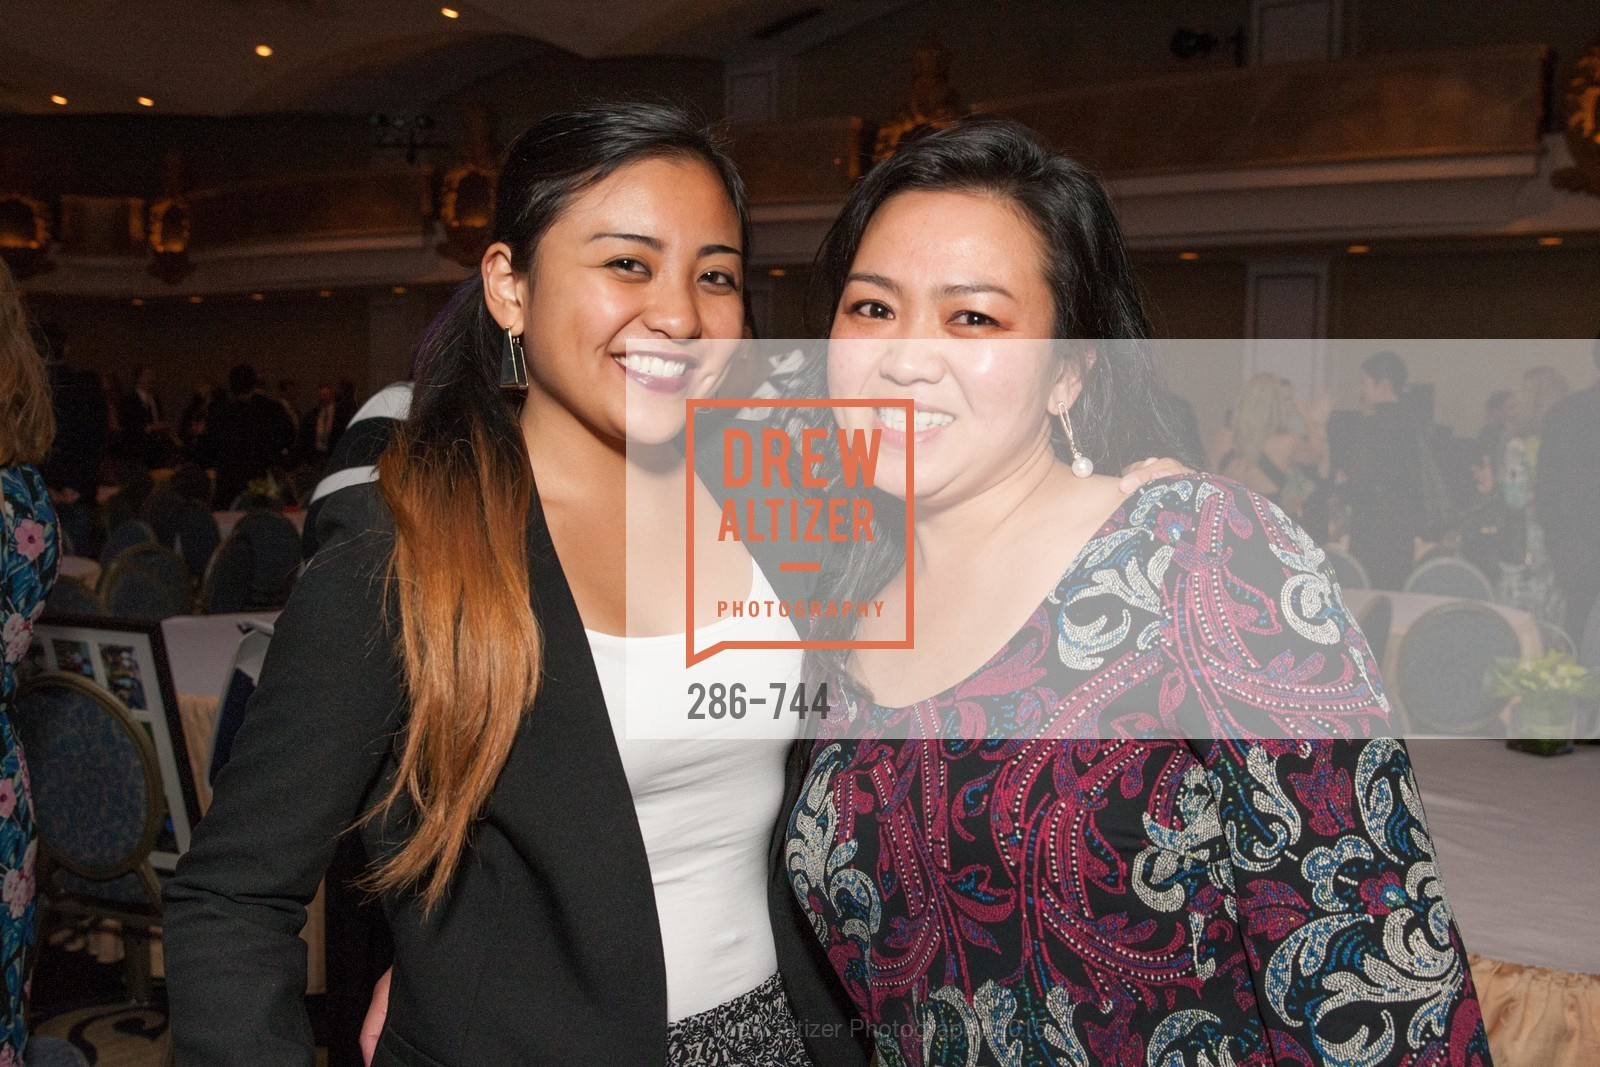 Aeris Velasco, Angie Dunagsa, Celebration of Launch of SHYP in Los Angeles, US, May 21st, 2015,Drew Altizer, Drew Altizer Photography, full-service event agency, private events, San Francisco photographer, photographer California